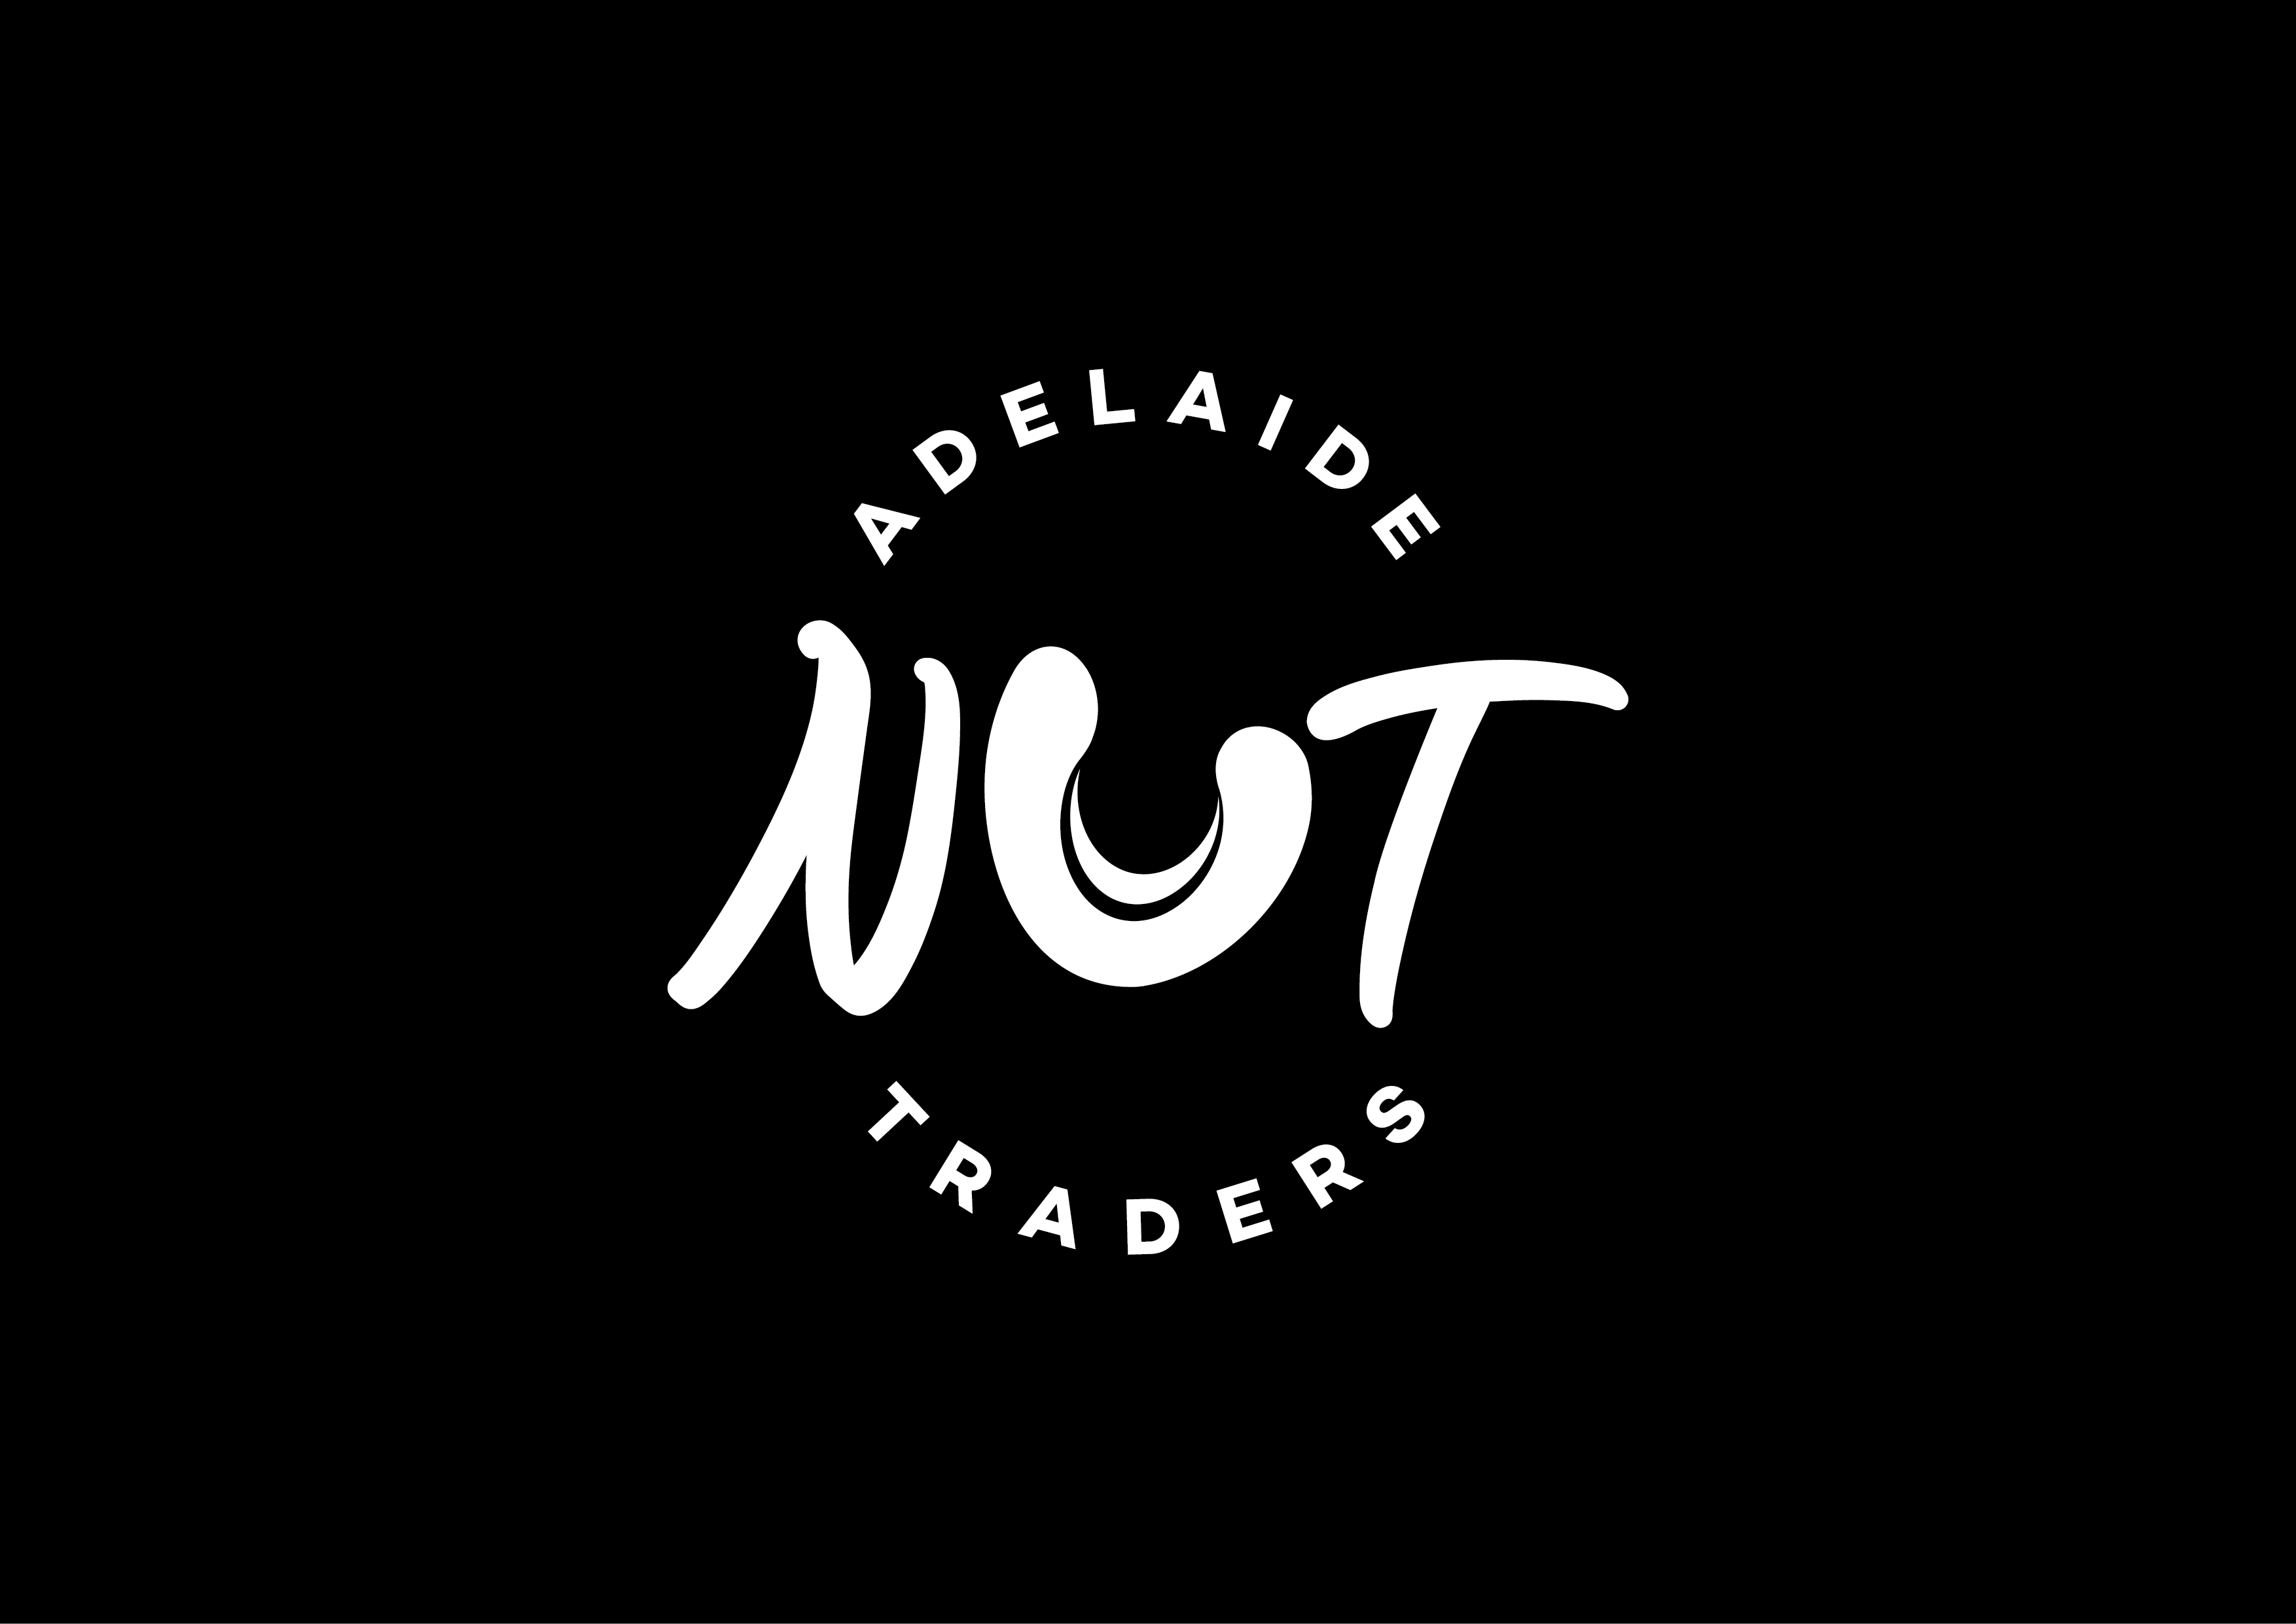 Adelaide Nut Traders